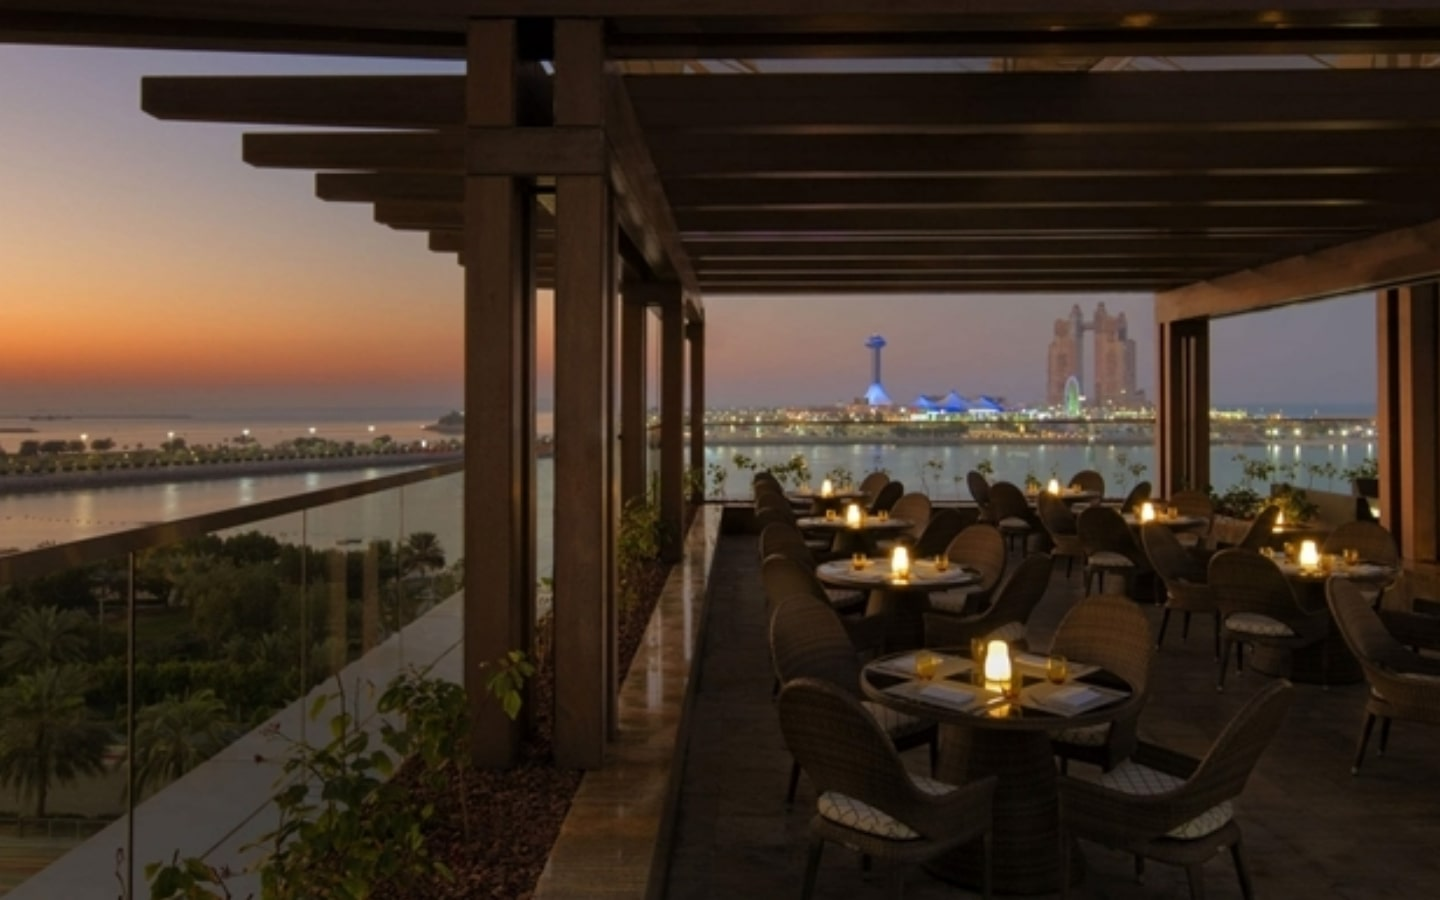 View from Azura Panoramic Lounge, one of the best suhoor restaurants in Abu Dhabi